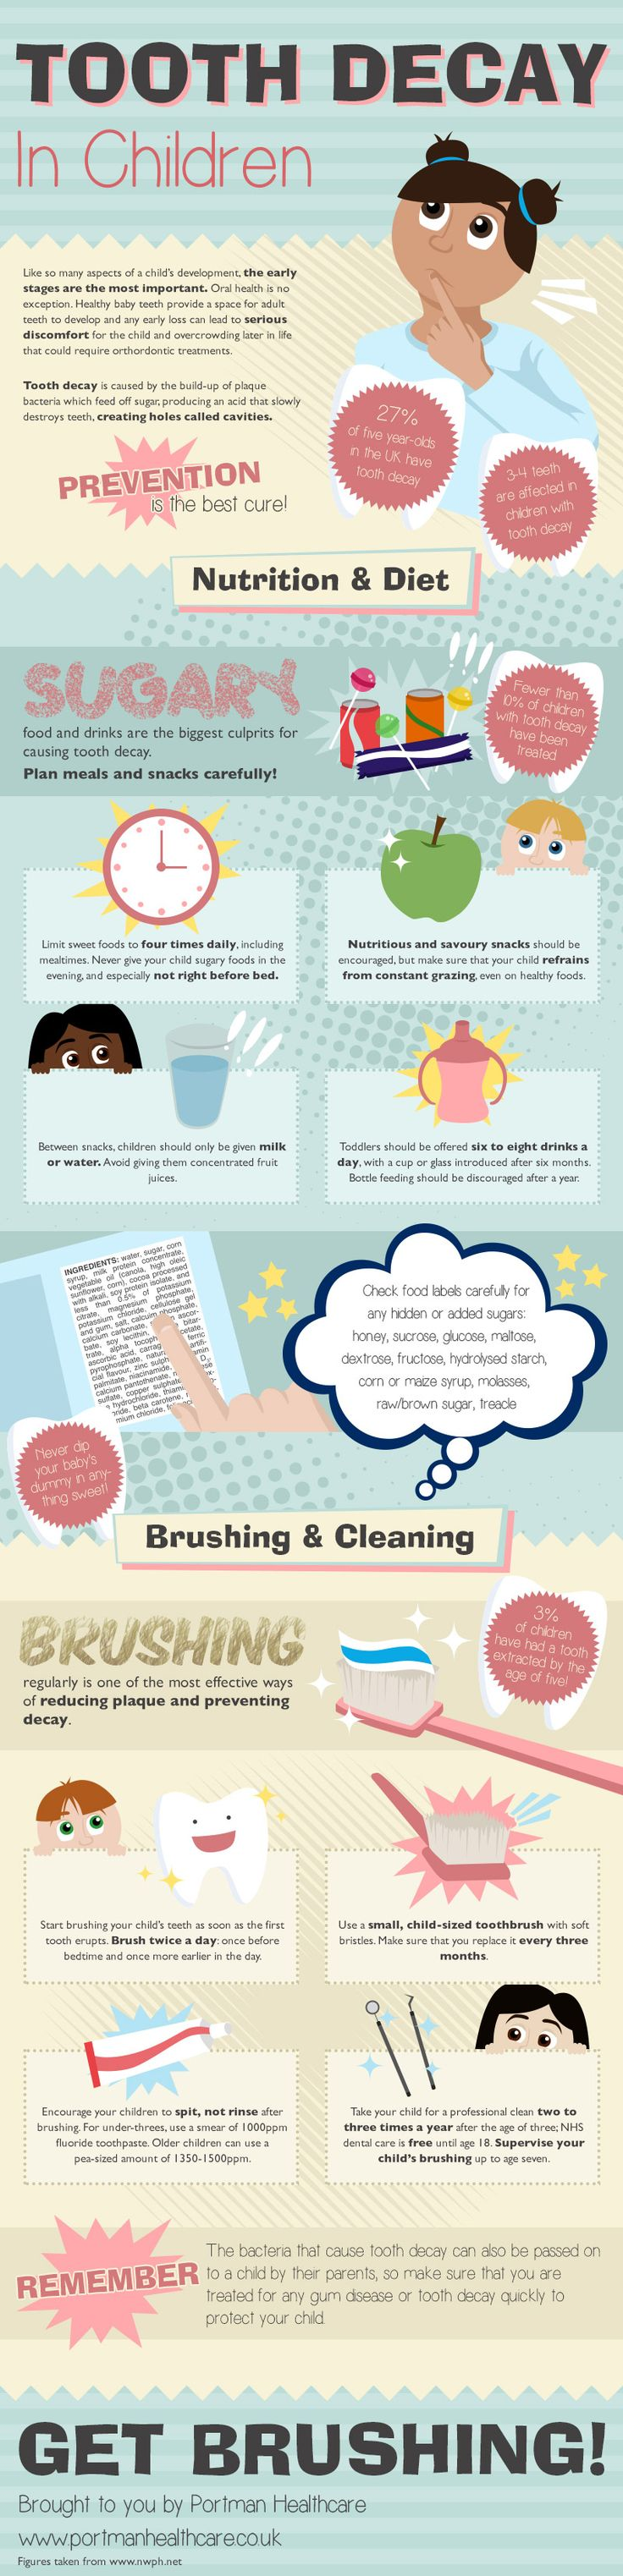 To help you care properly for your child's teeth, we have created an infographic that covers all the important aspects of preventing tooth decay in children. It will help you understand how nutrition and diet can have a huge impact on your child's oral health, and offers tips and tricks on how to keep tooth decay at bay. It also includes a guide on how to start a brushing and cleaning routine when your child's first baby teeth start developing, and where to go from there.